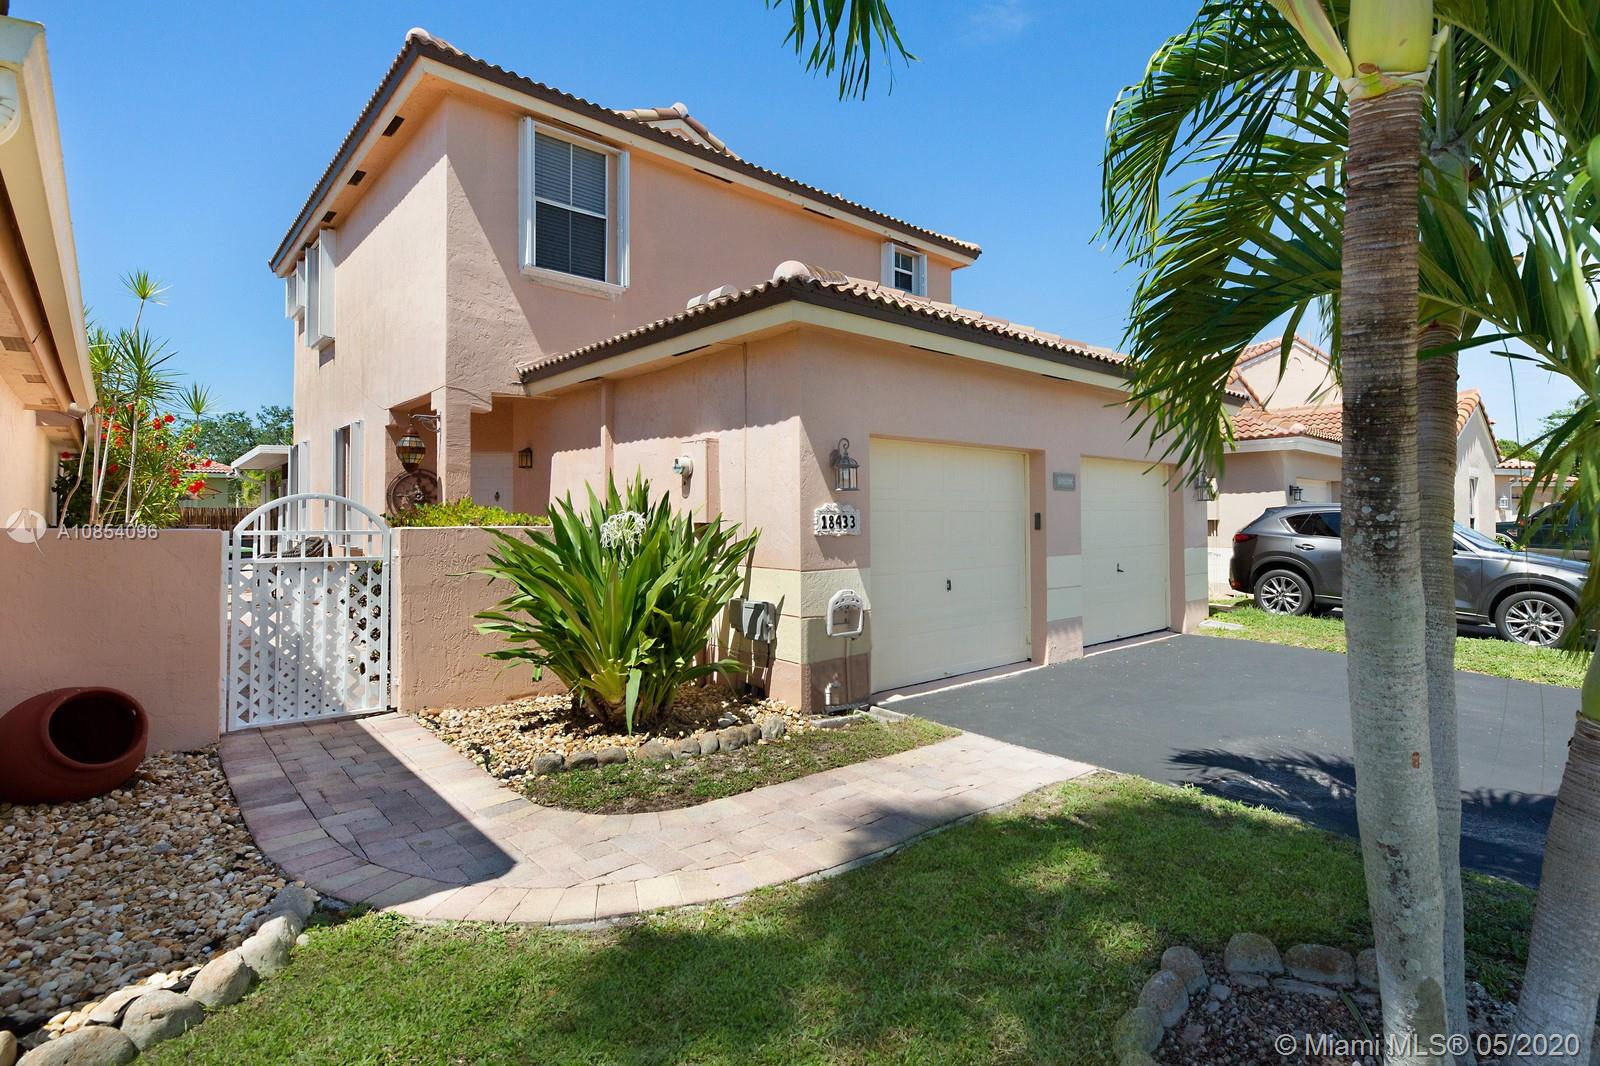 Amazing find in the community of Dimension North at Chapel Trail! Under 10 minutes away from top rated public schools from elementary through high school. This home boasts stunning marble flooring in common living spaces downstairs and laminated flooring in bedrooms upstairs. The kitchen has been updated with mocha cabinets and modern silver hardware, granite counter tops and glass mosaic tile backsplash, double basin sink, faucet and appliances including a wine cooler, all stainless-steel. The half bathroom downstairs is also nicely updated. There is plenty of space for outdoor activities and gatherings in this fully paved, bamboo fenced back yard having a raised deck, pergola and cozy screened patio. New roof, accordion shutters on all windows, water heater and dryer! Don't miss out.